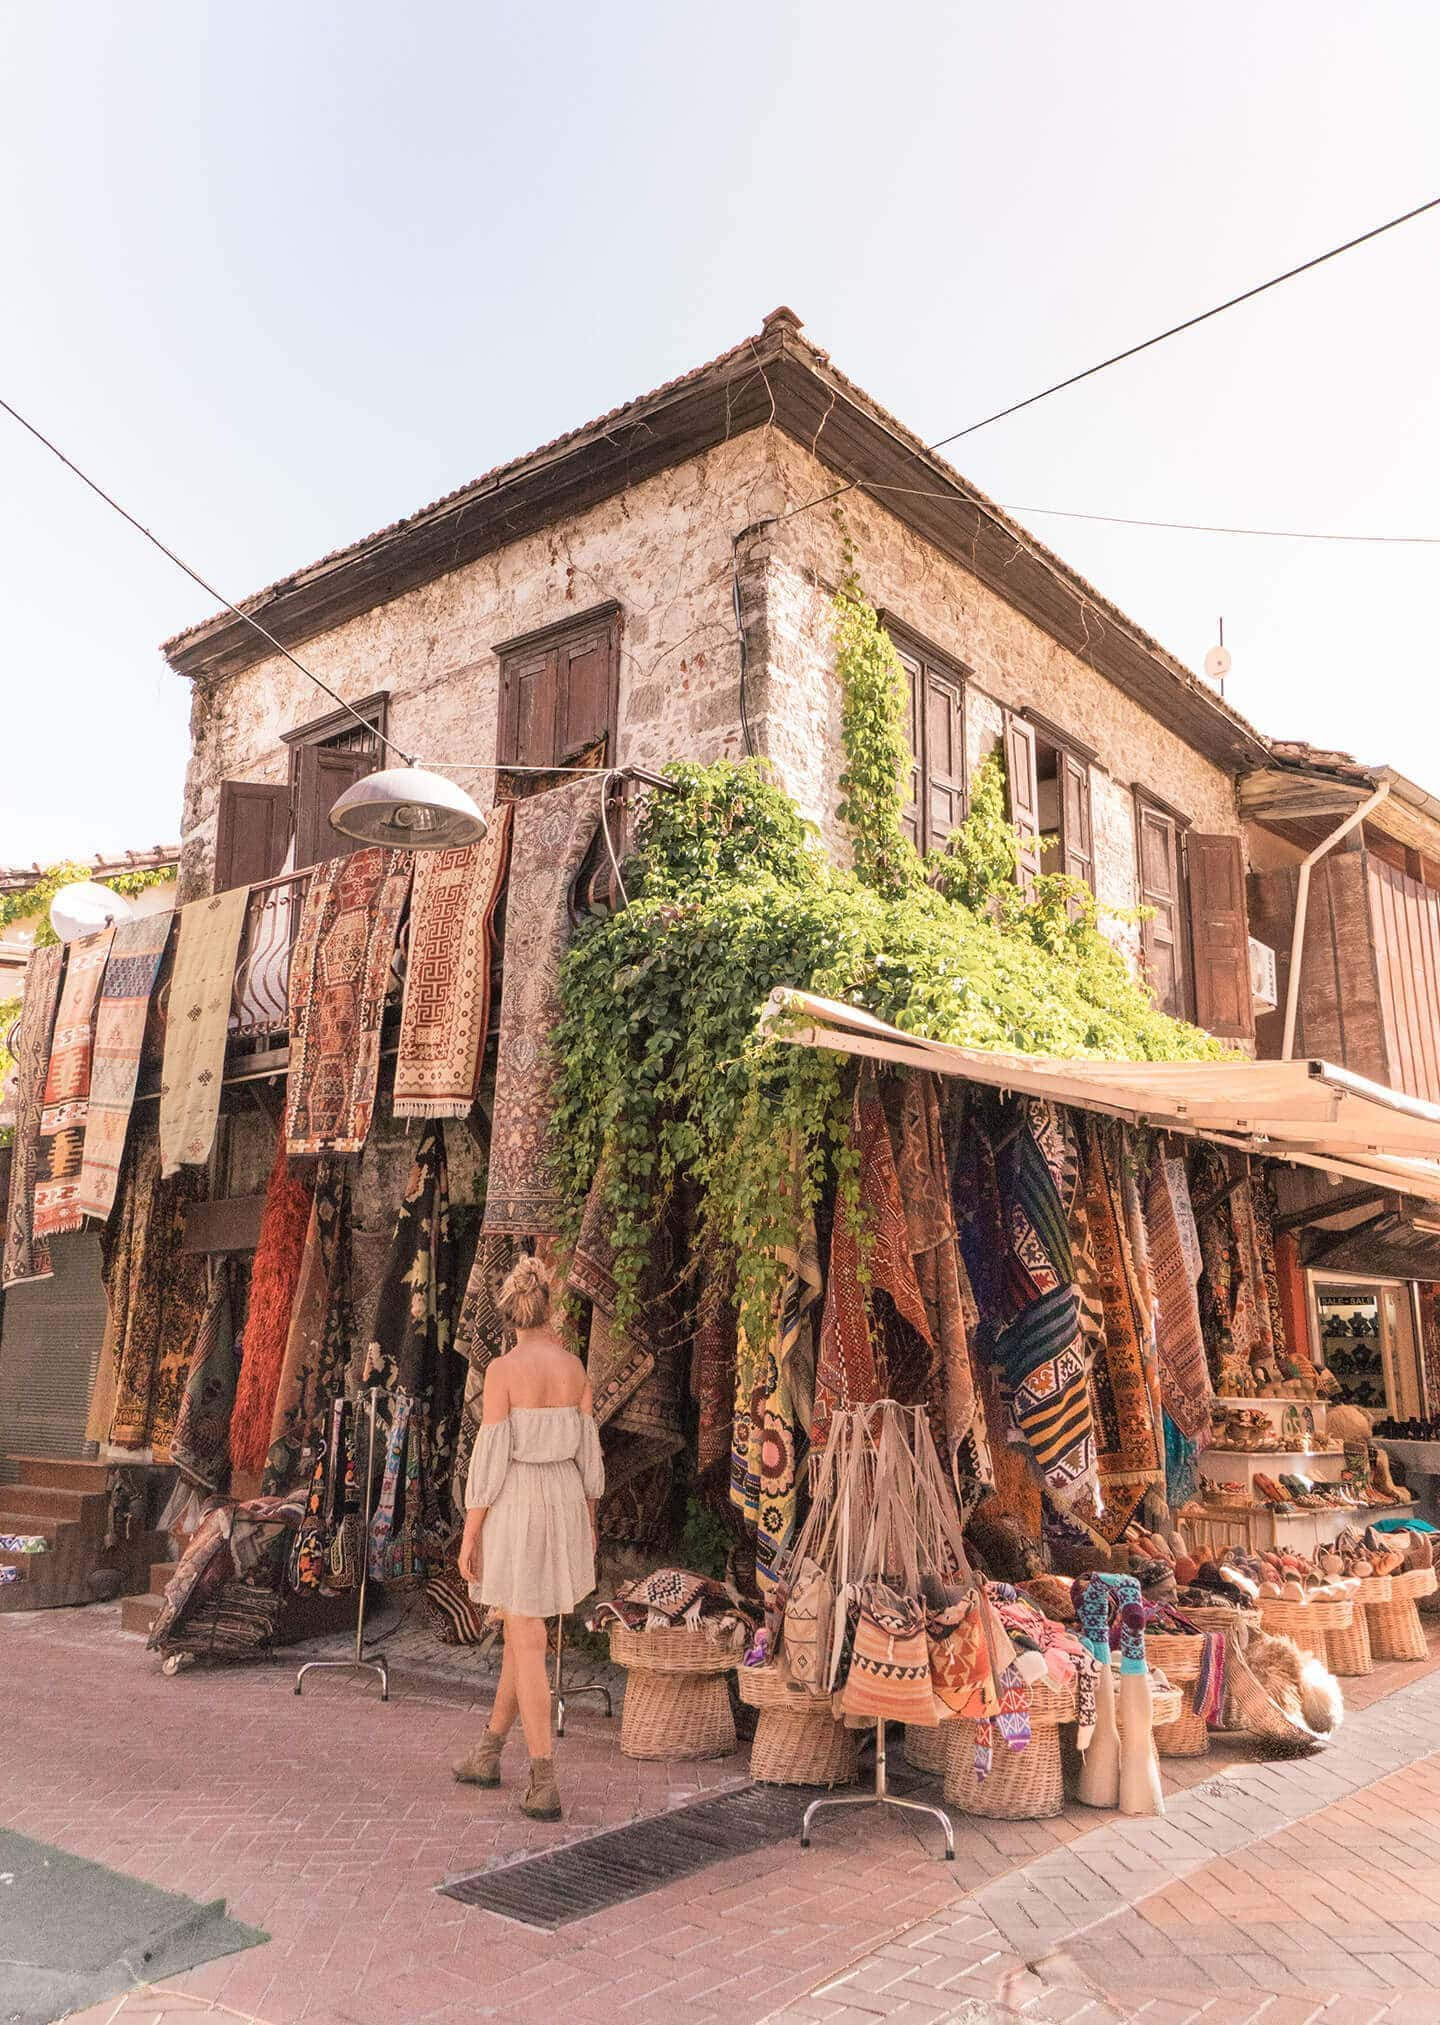 fethiye things to do old town